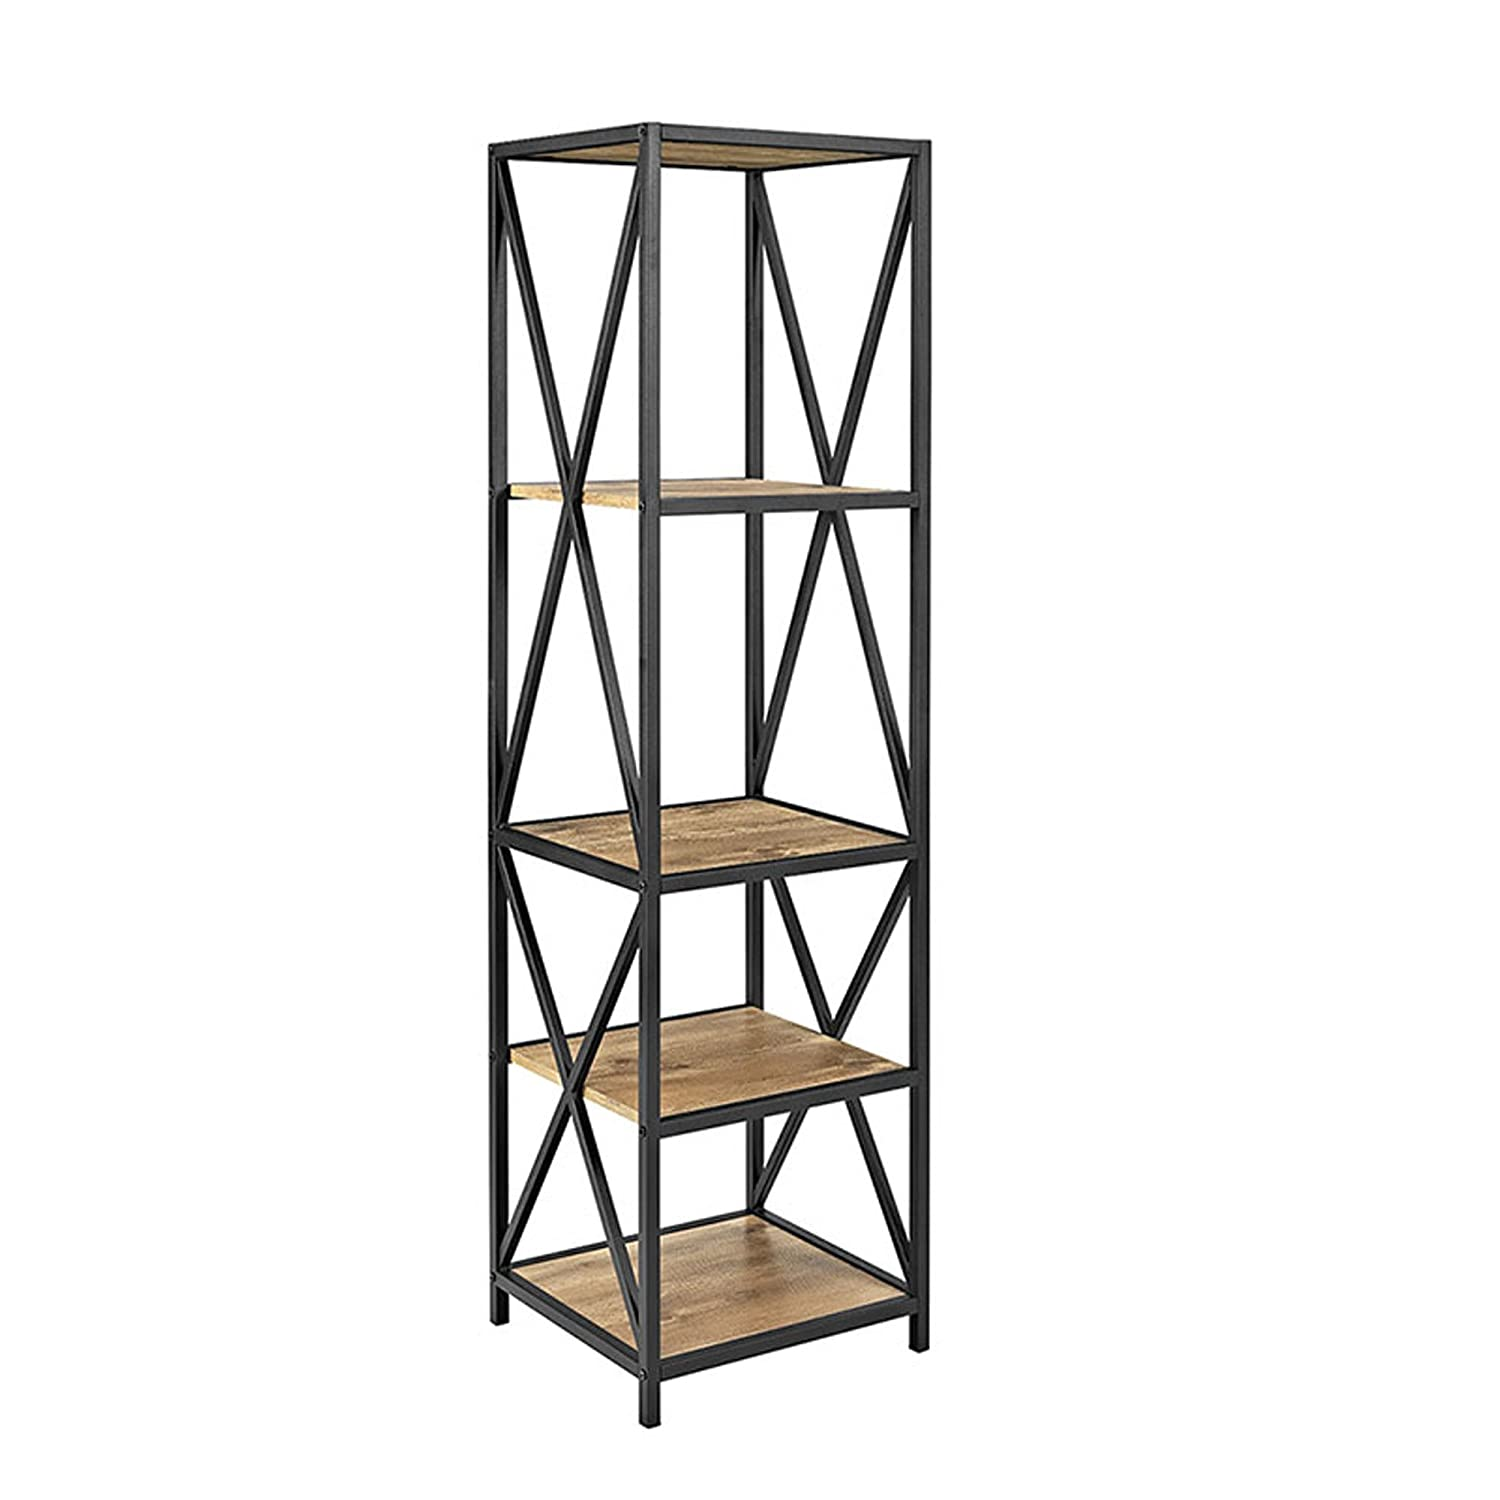 WE Furniture Industrial Bookshelf, Powder-Coated Steel, Barnwood, One Size